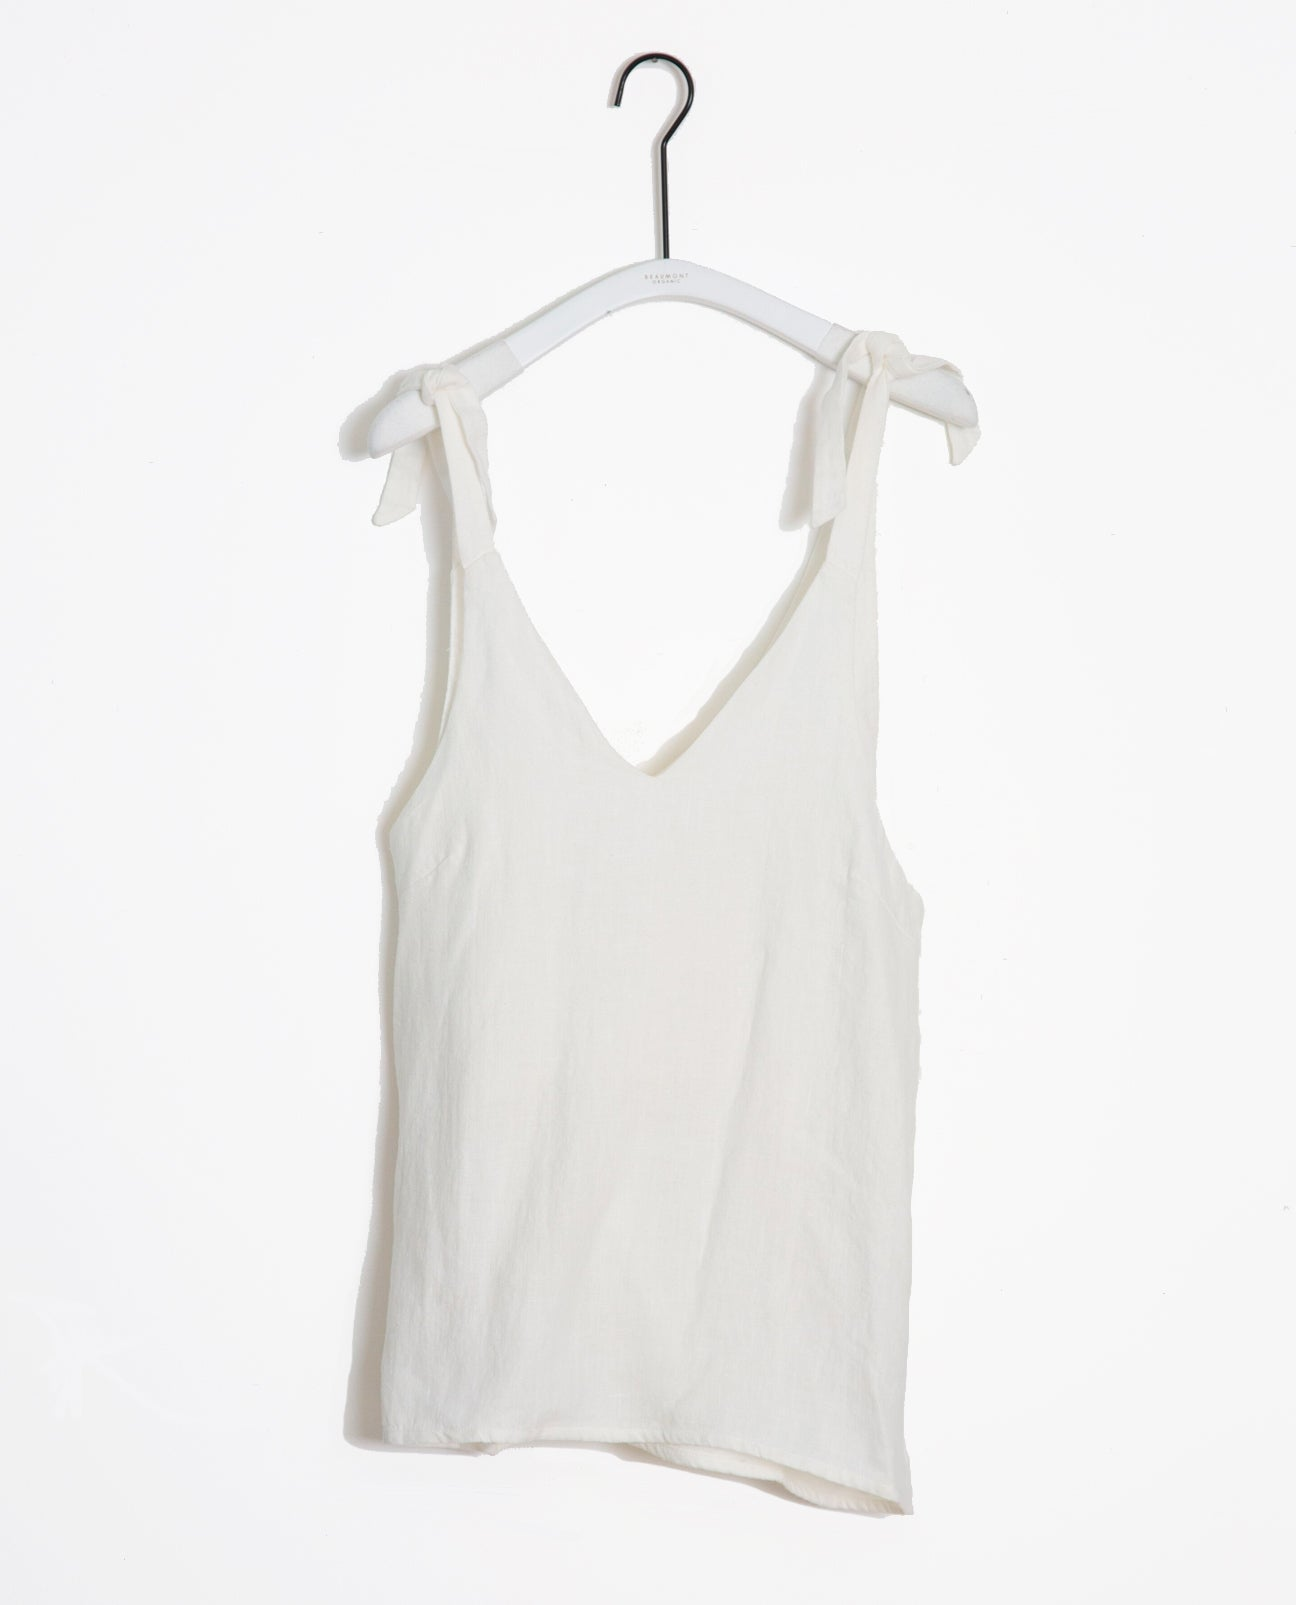 Emma-May Organic Cotton & Linen Top In Off White